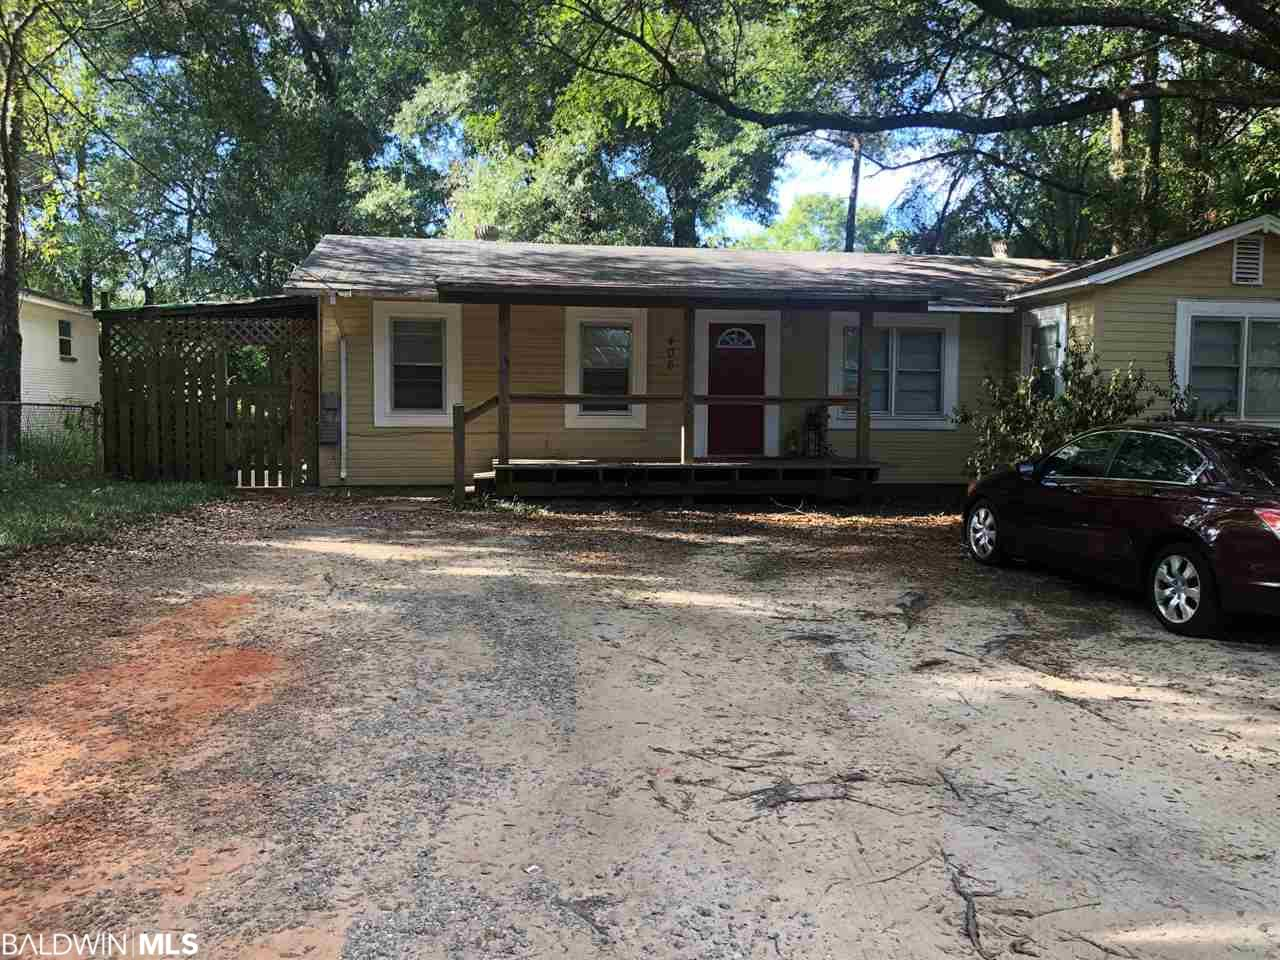 On a quiet street in the city of Fairhope is where you find this adorable ranch style home.  Minutes from the Water and Downtown Fairhope. Large backyard with a spacious shed. Great starter home or investment property.